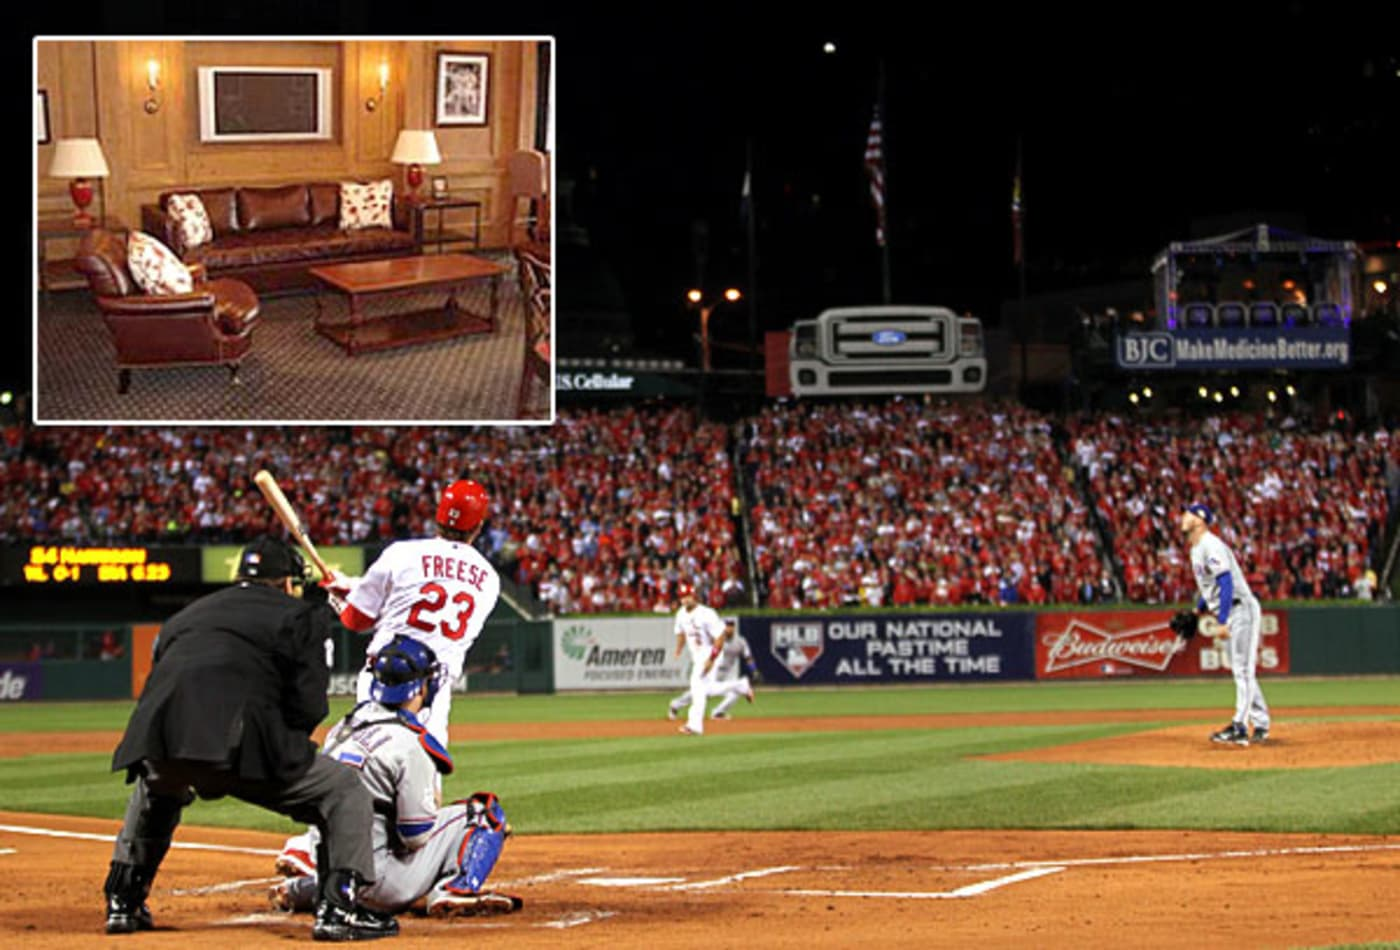 MLB-World-Series-Busch-St-Louis-Most-Expensive-Luxury-Suites-2-CNBC..jpg